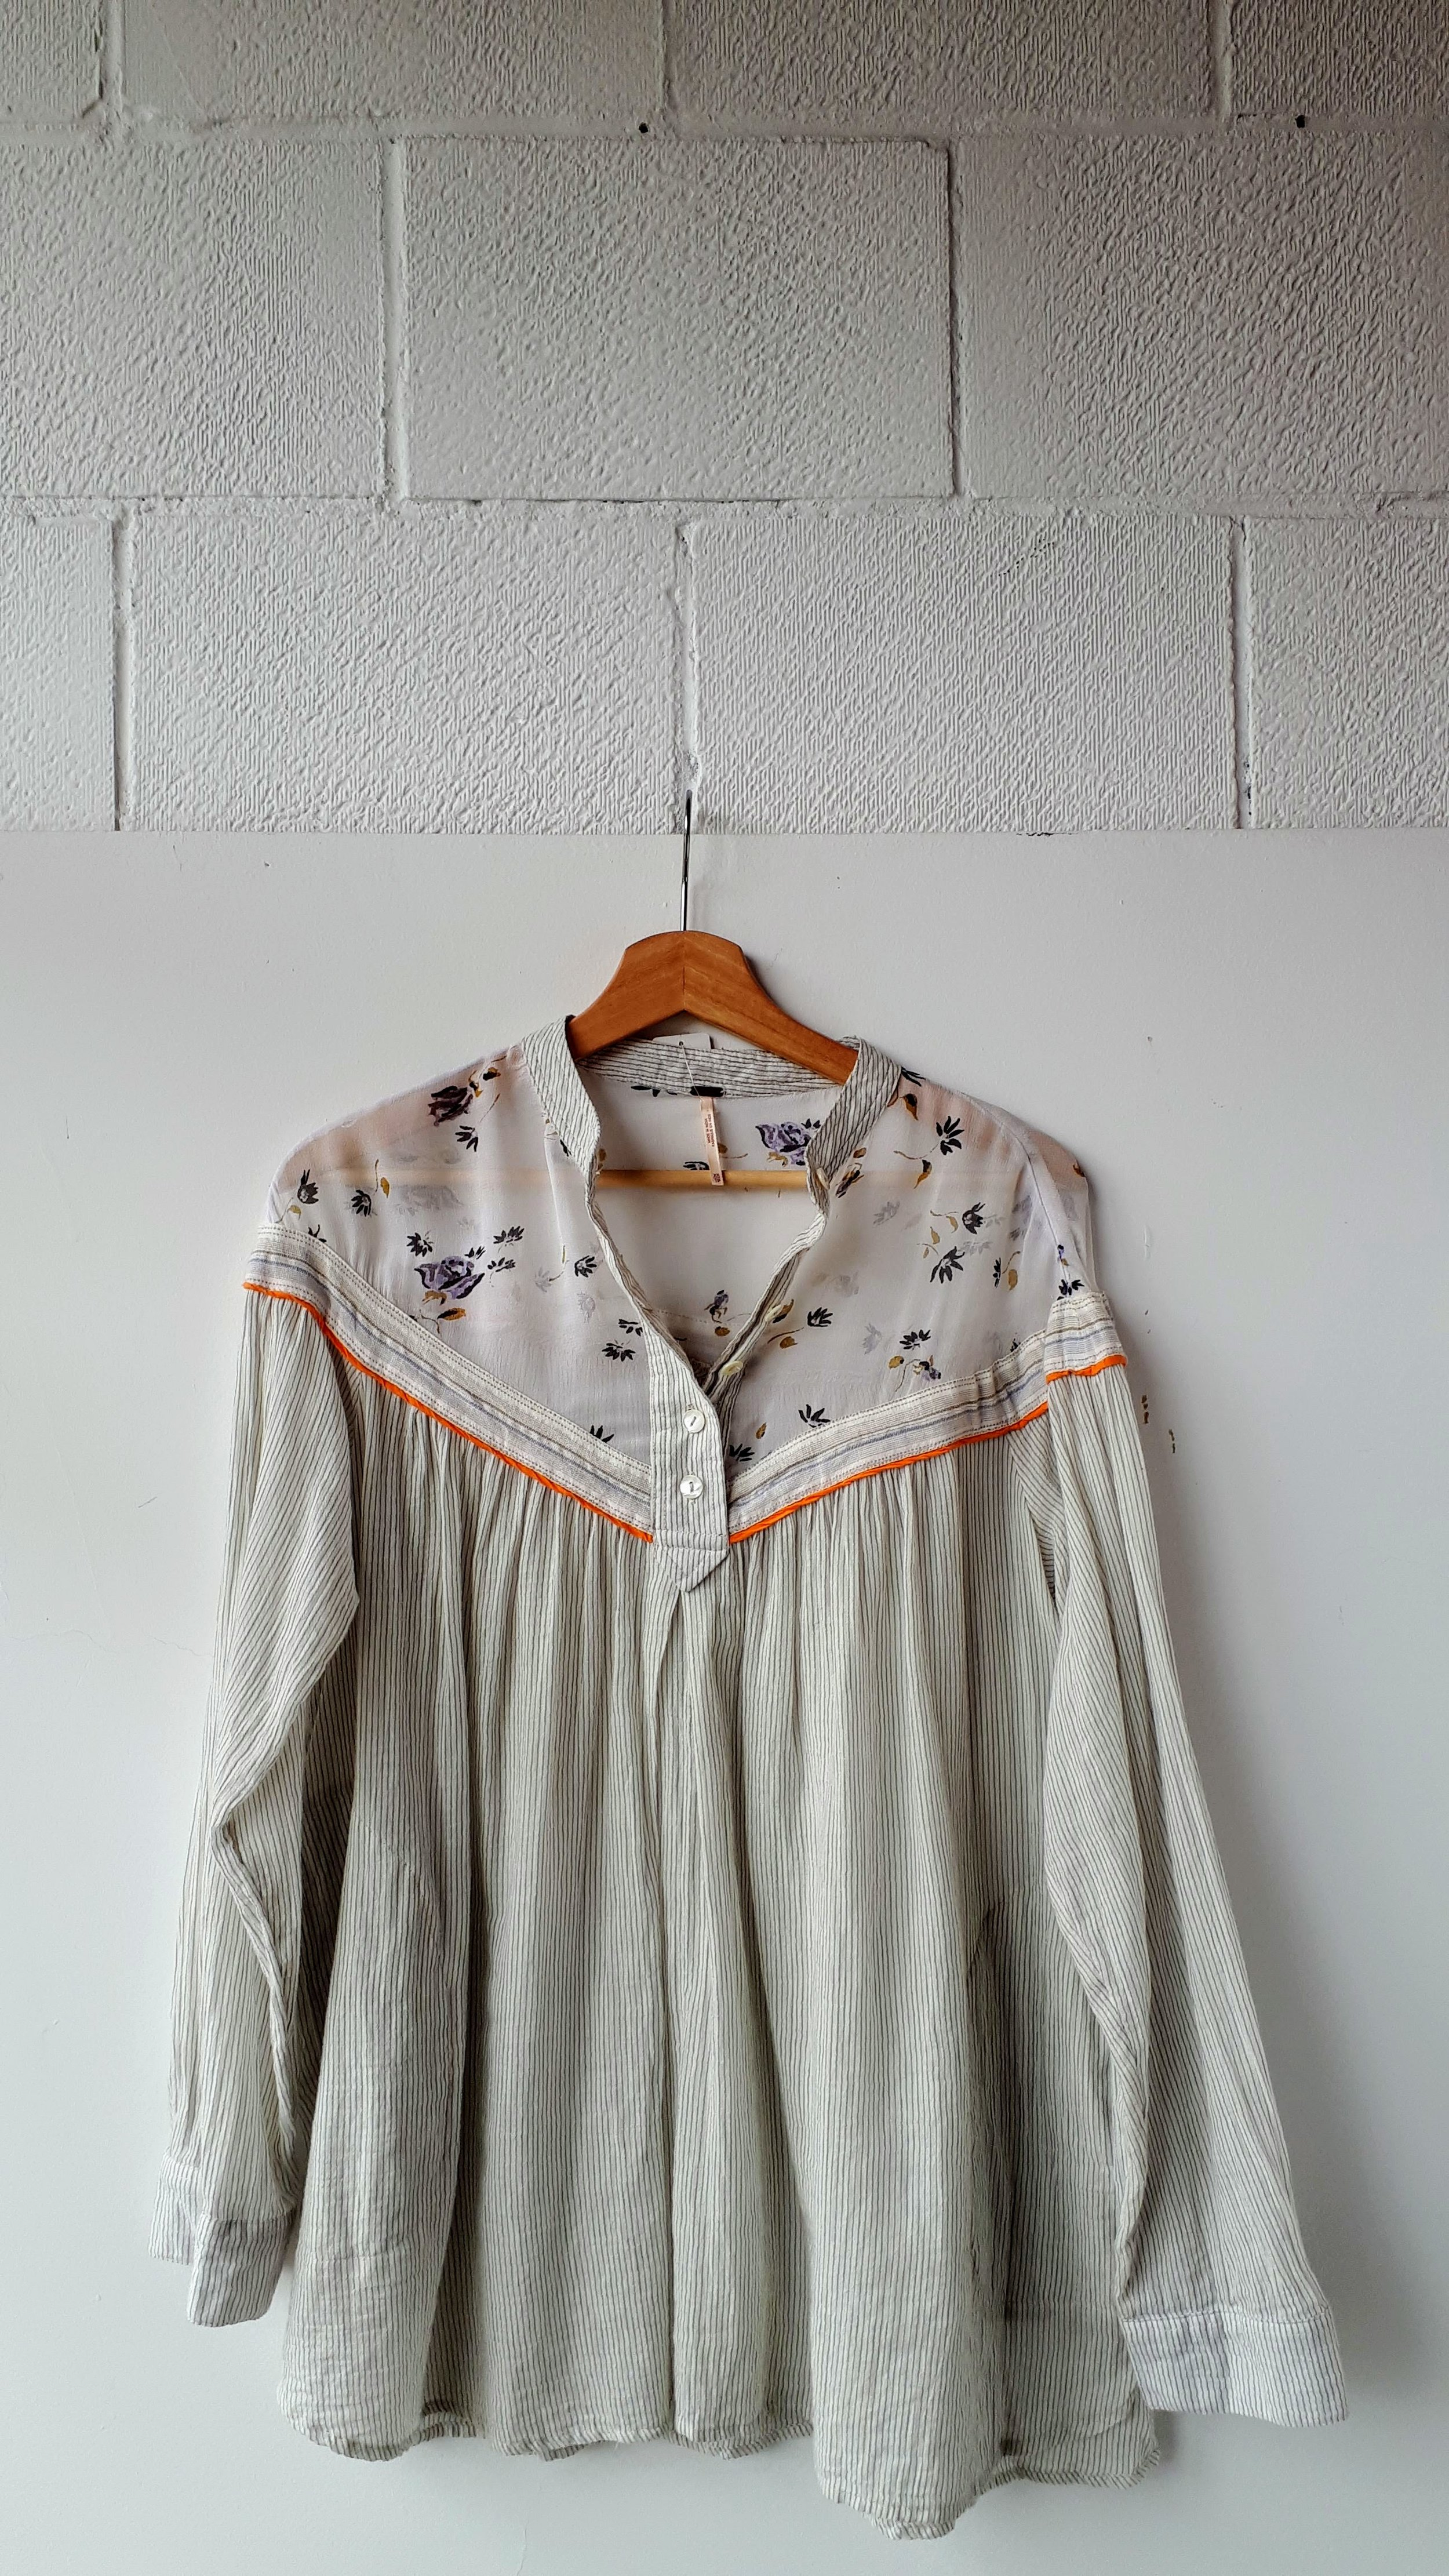 Free People top; Size S, $28 (now on for $14!)